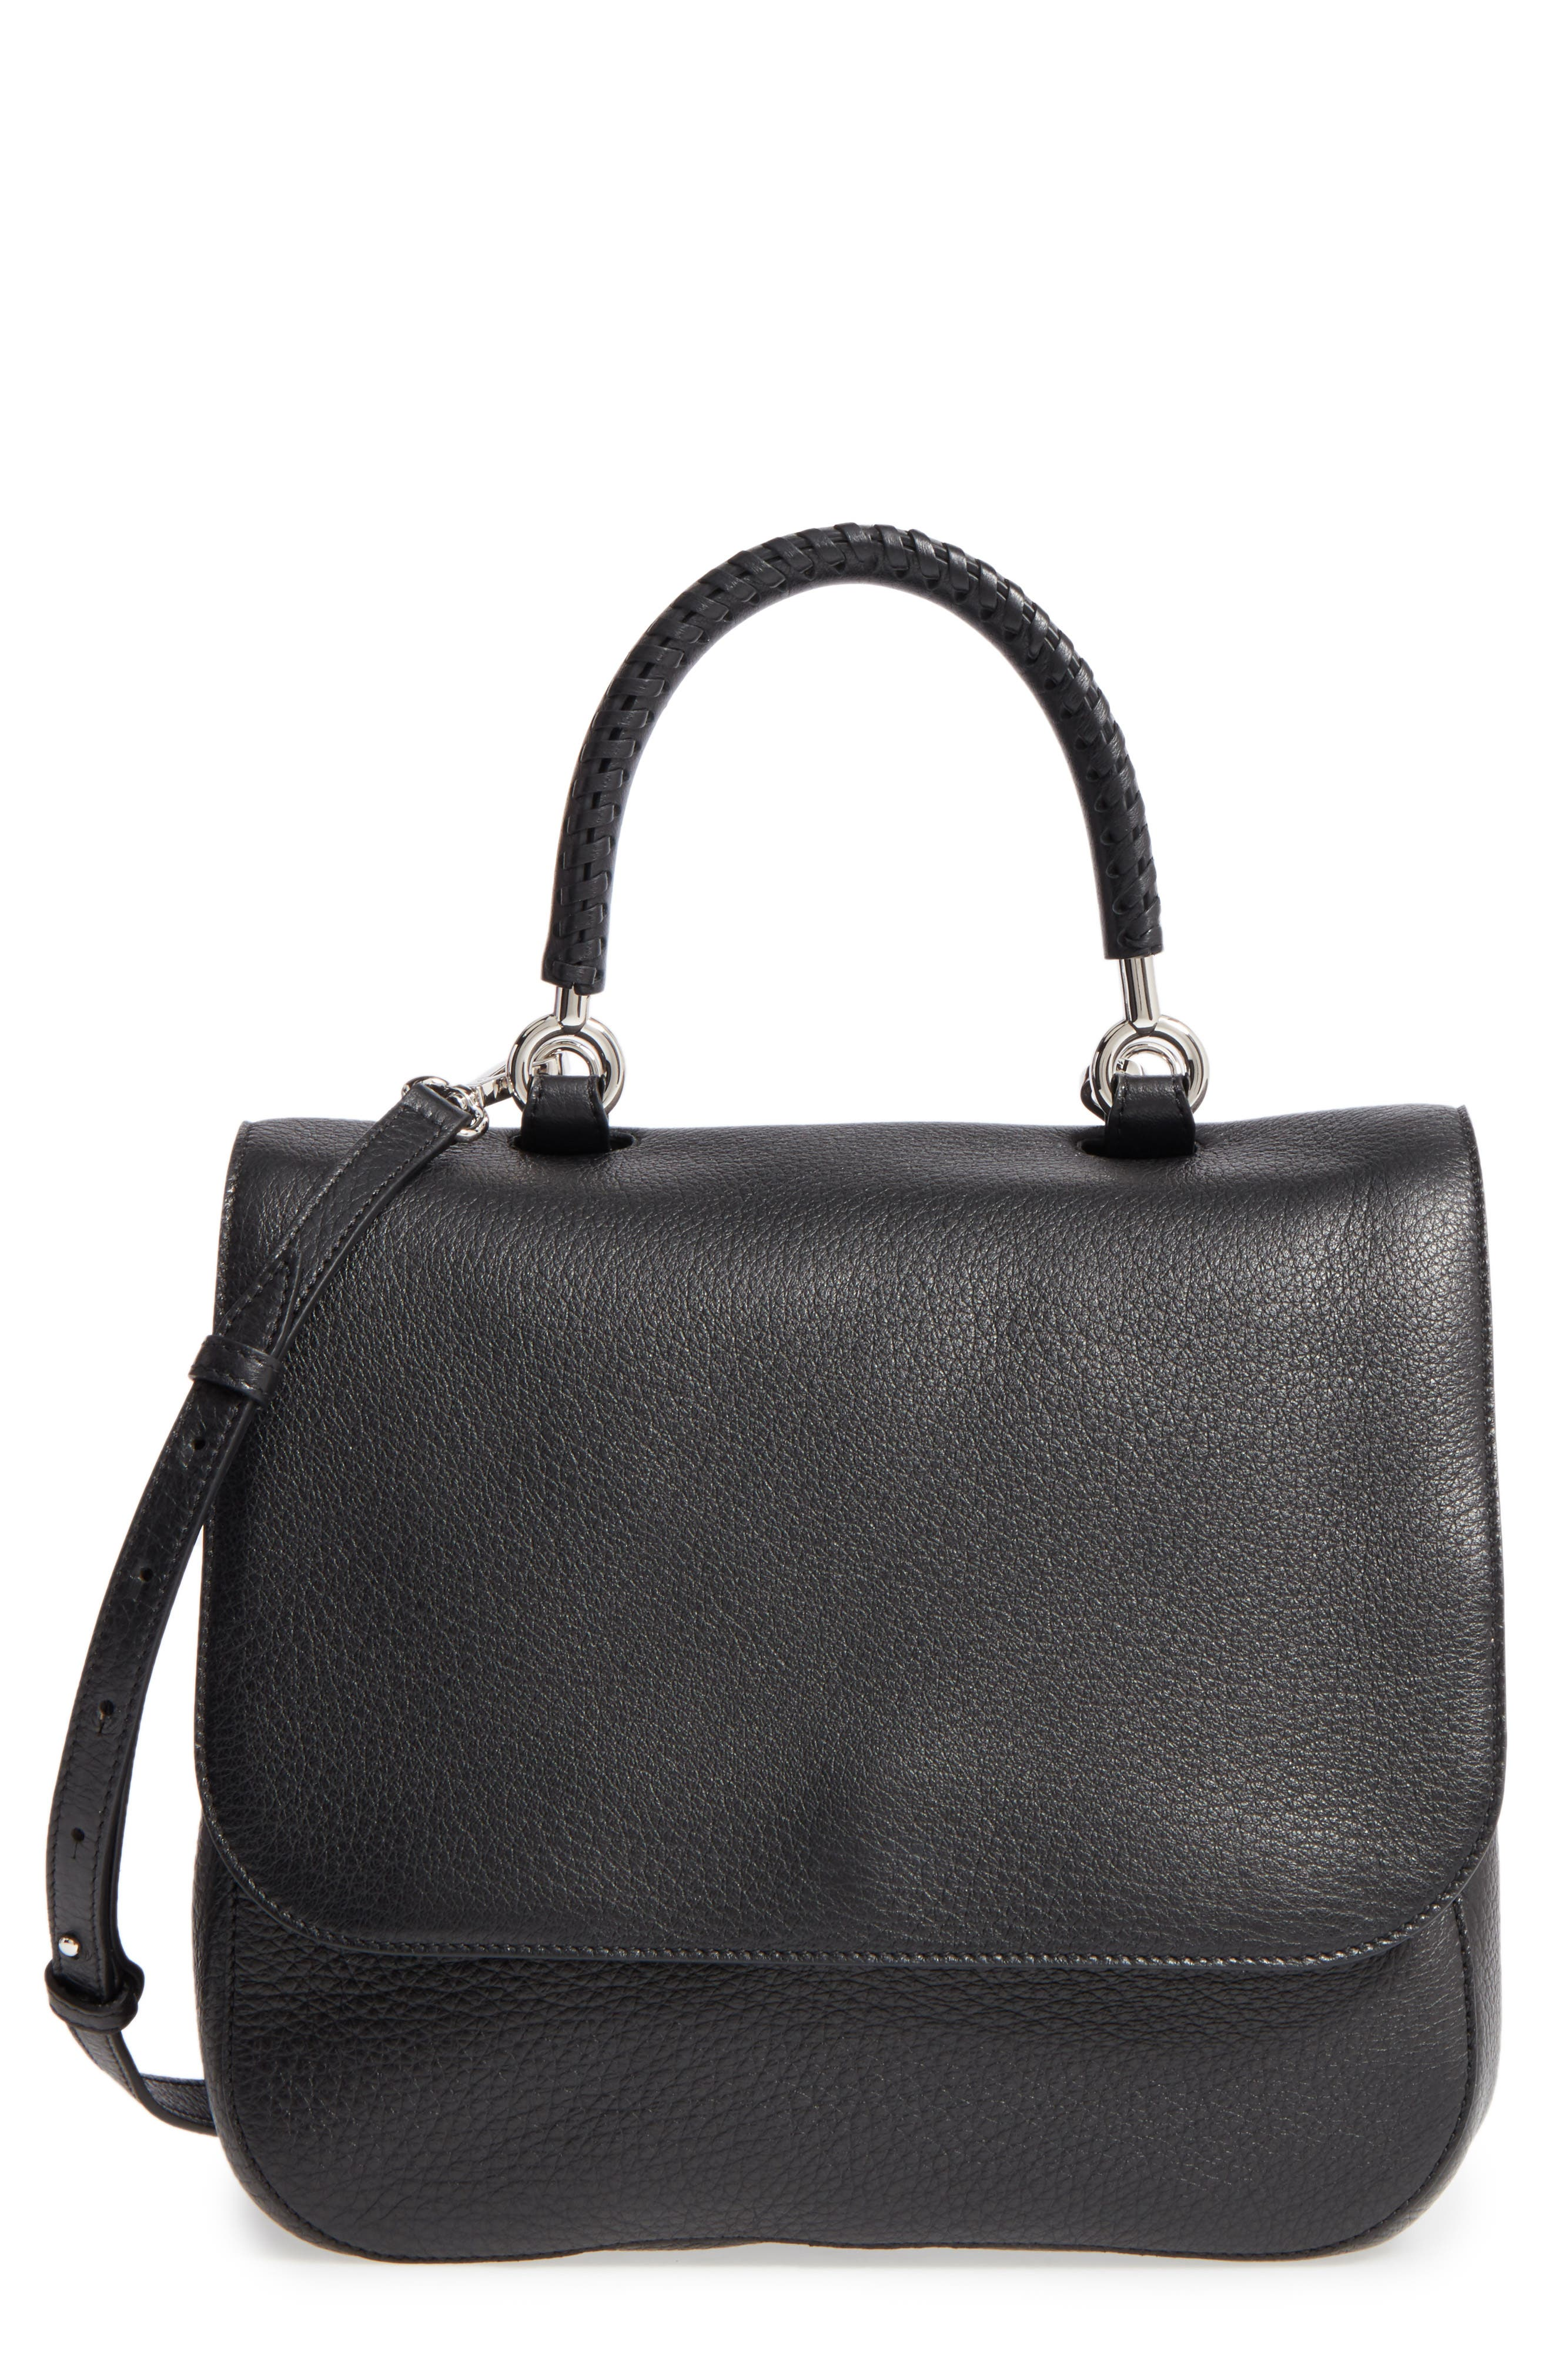 Max Mara Top Handle Leather Satchel